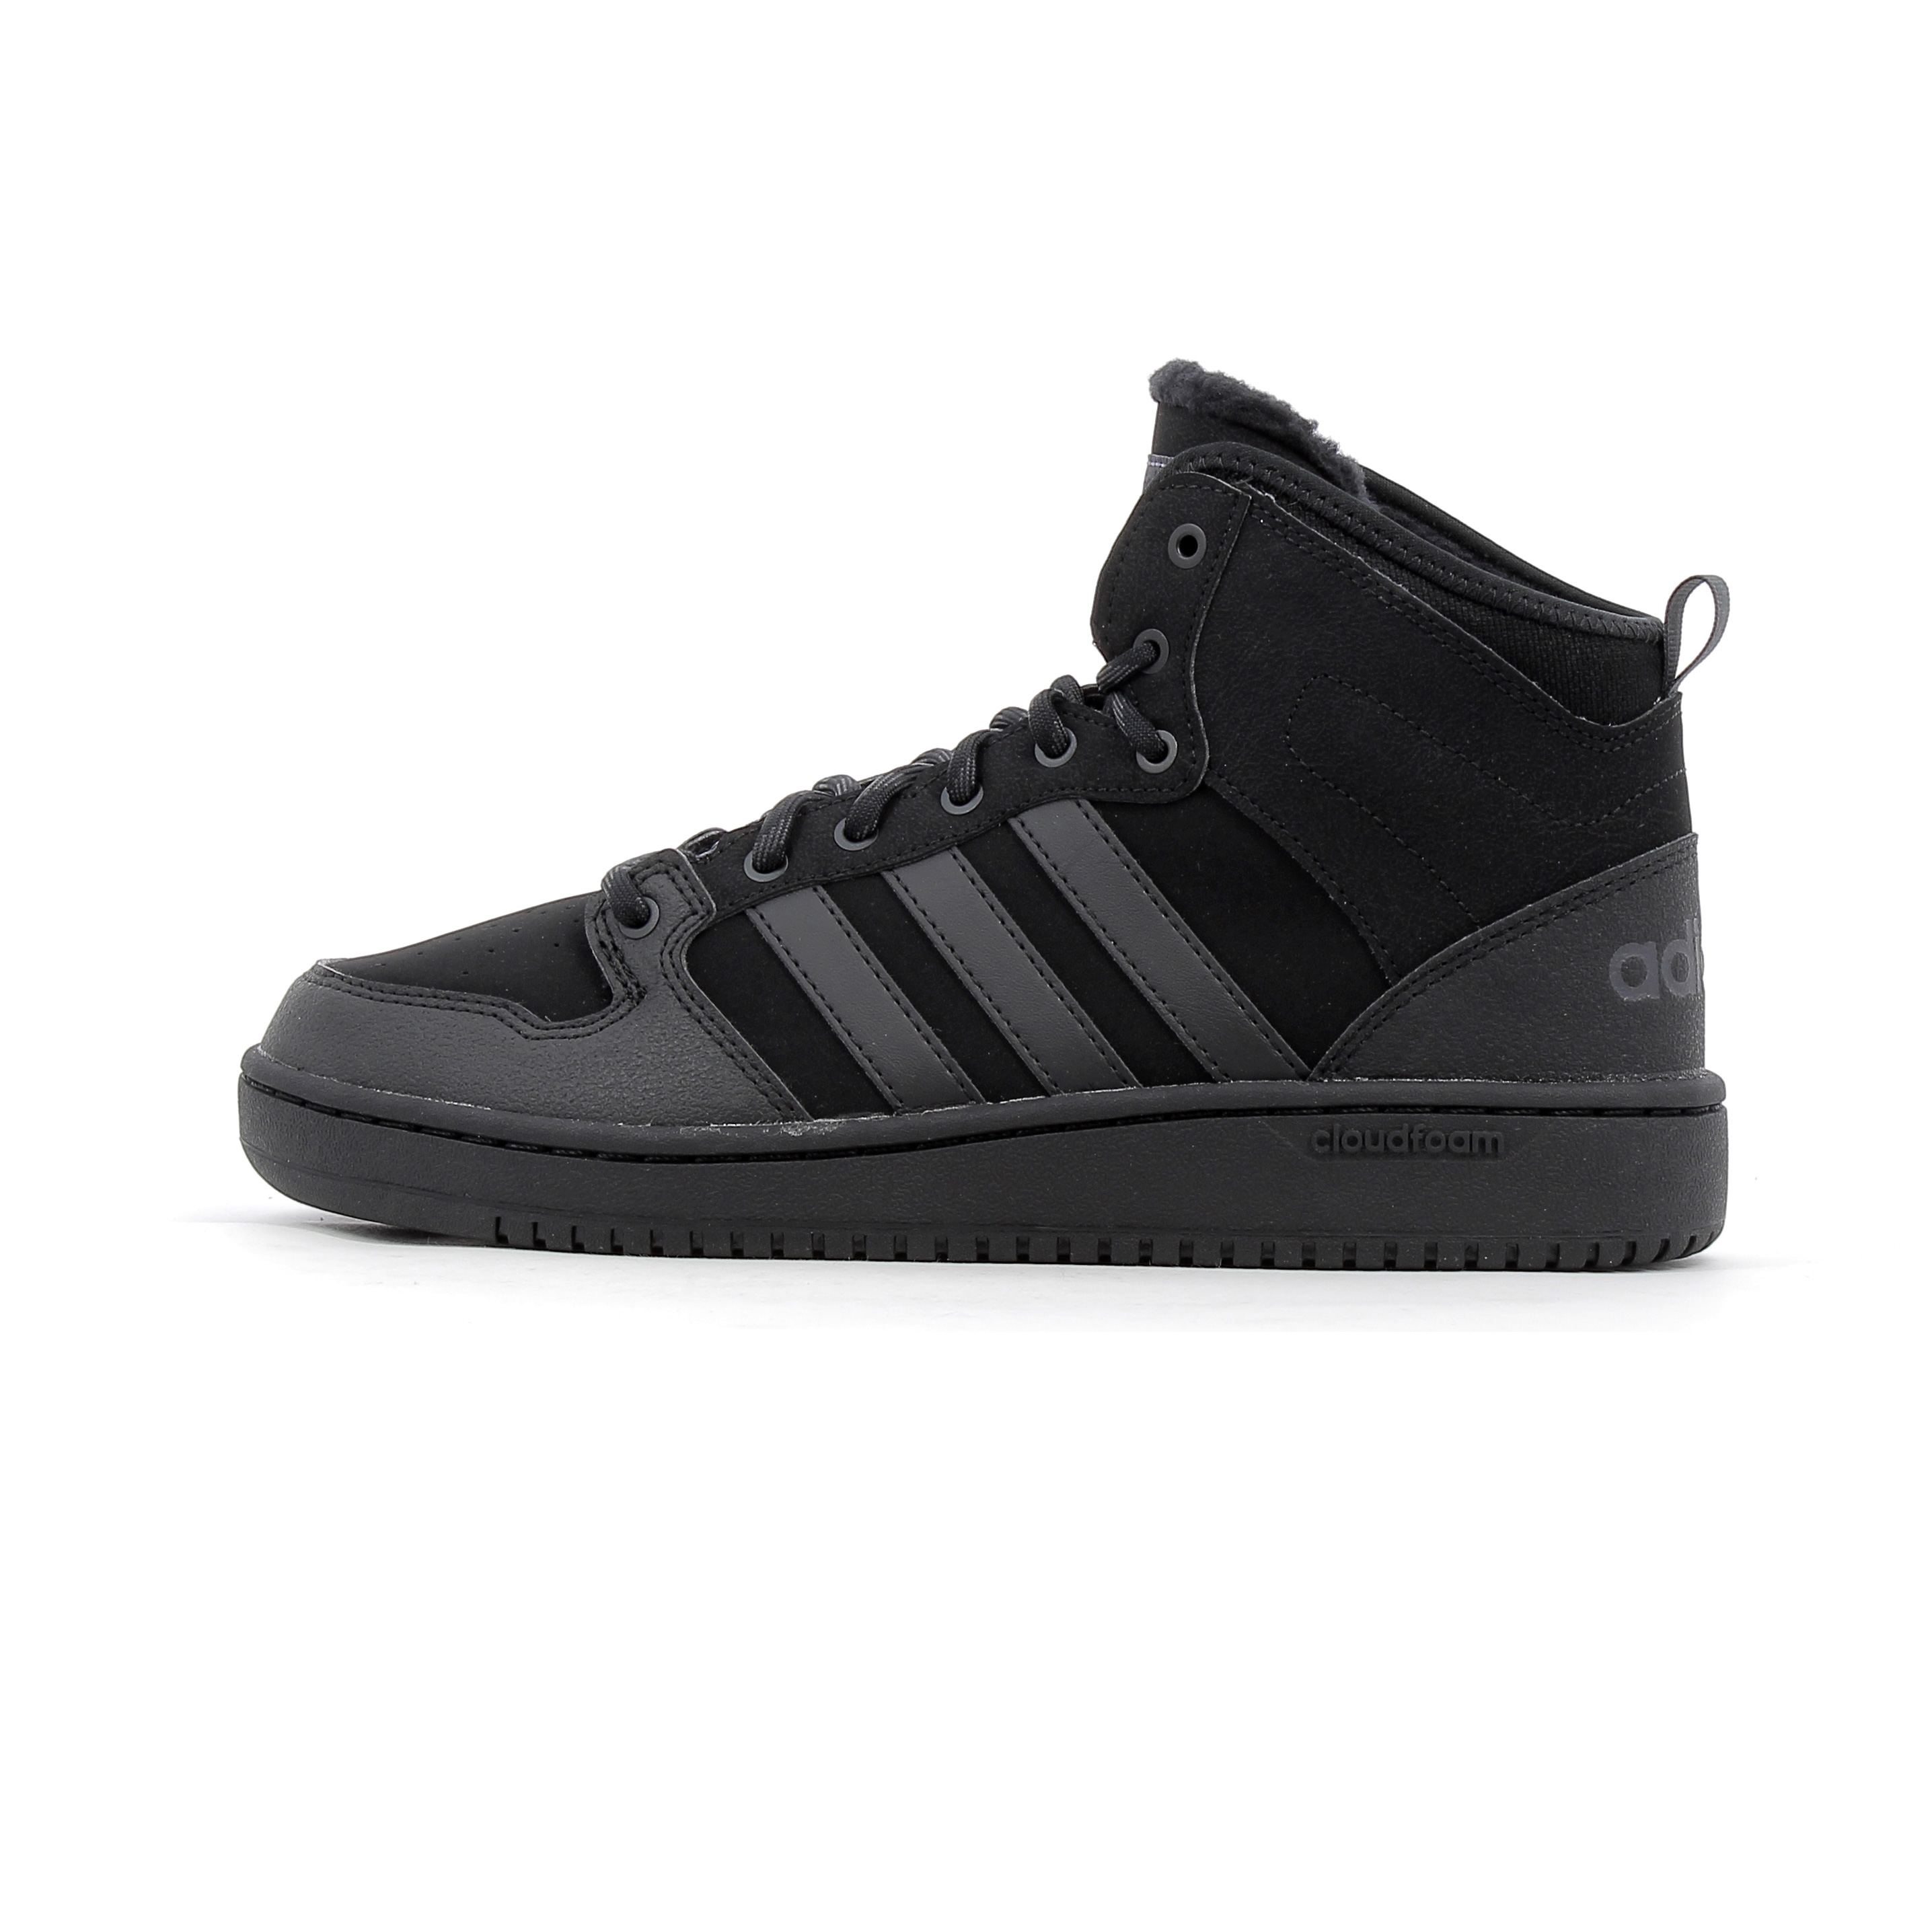 adidas Performance Cloudfoam Hoops Mid Winter Altri Scarpe